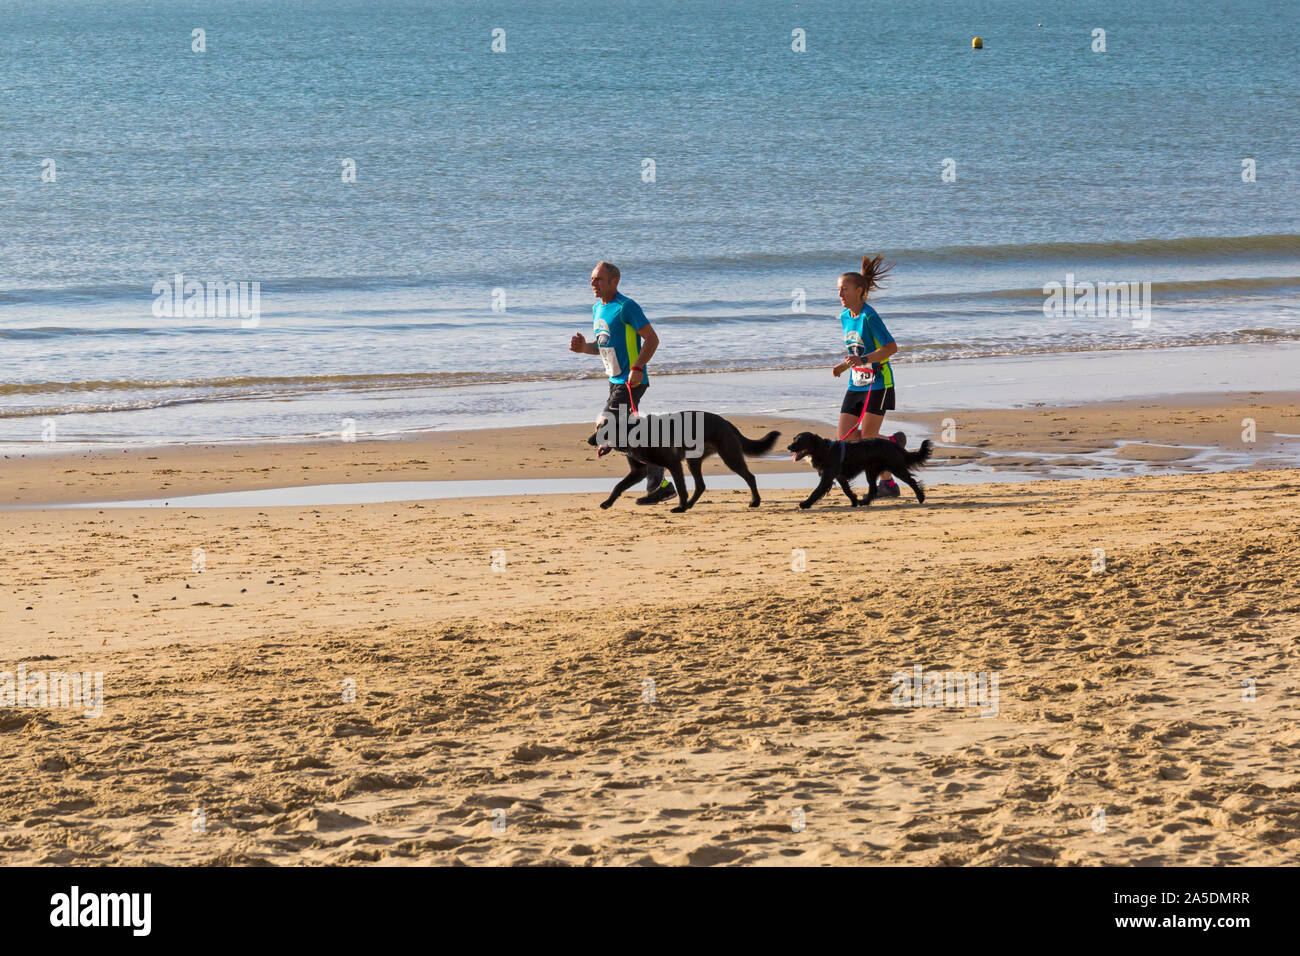 Bournemouth, Dorset, UK. 20th October 2019. Participants take part in the Beach Race, Race the Tide, a low tide beach run along the beautiful shoreline of Bournemouth beach towards Sandbanks beach. Runners run the 5k or 10k race along the seashore and over the groynes before the tide comes in. A dry chilly early morning with some sunshine. Credit: Carolyn Jenkins/Alamy Live News Stock Photo